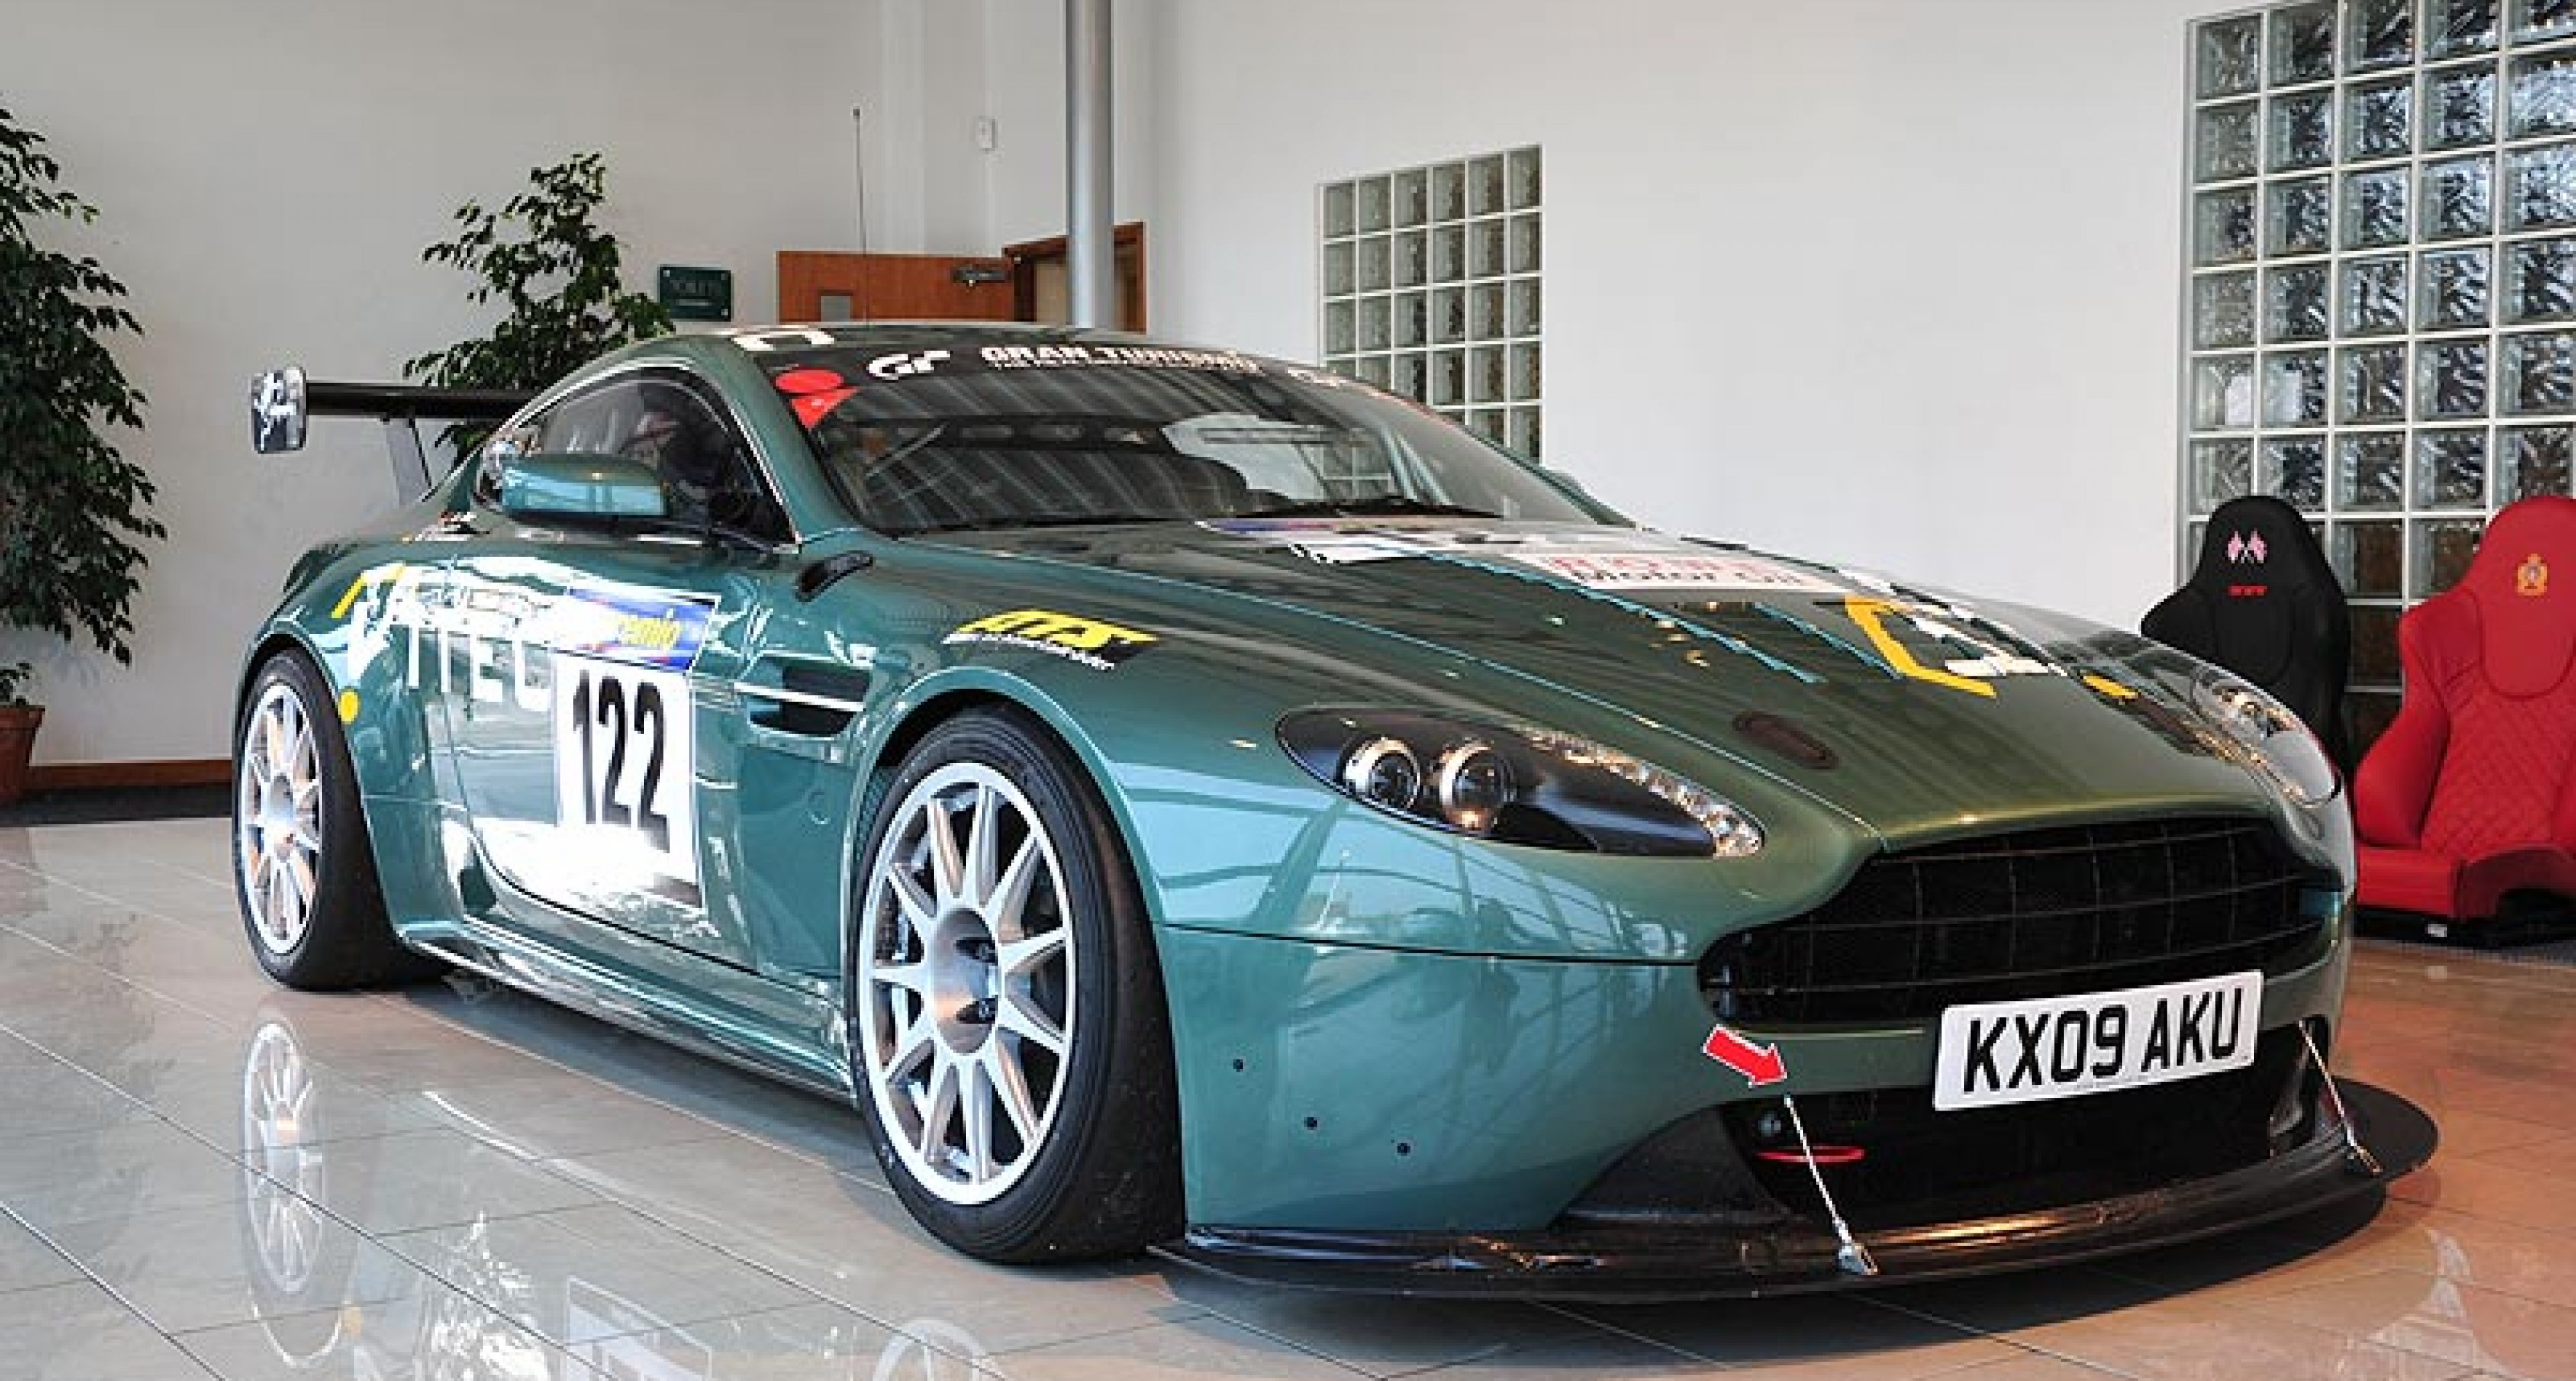 2011 Aston Martin V12 Vantage Day at Works Service, Newport Pagnell